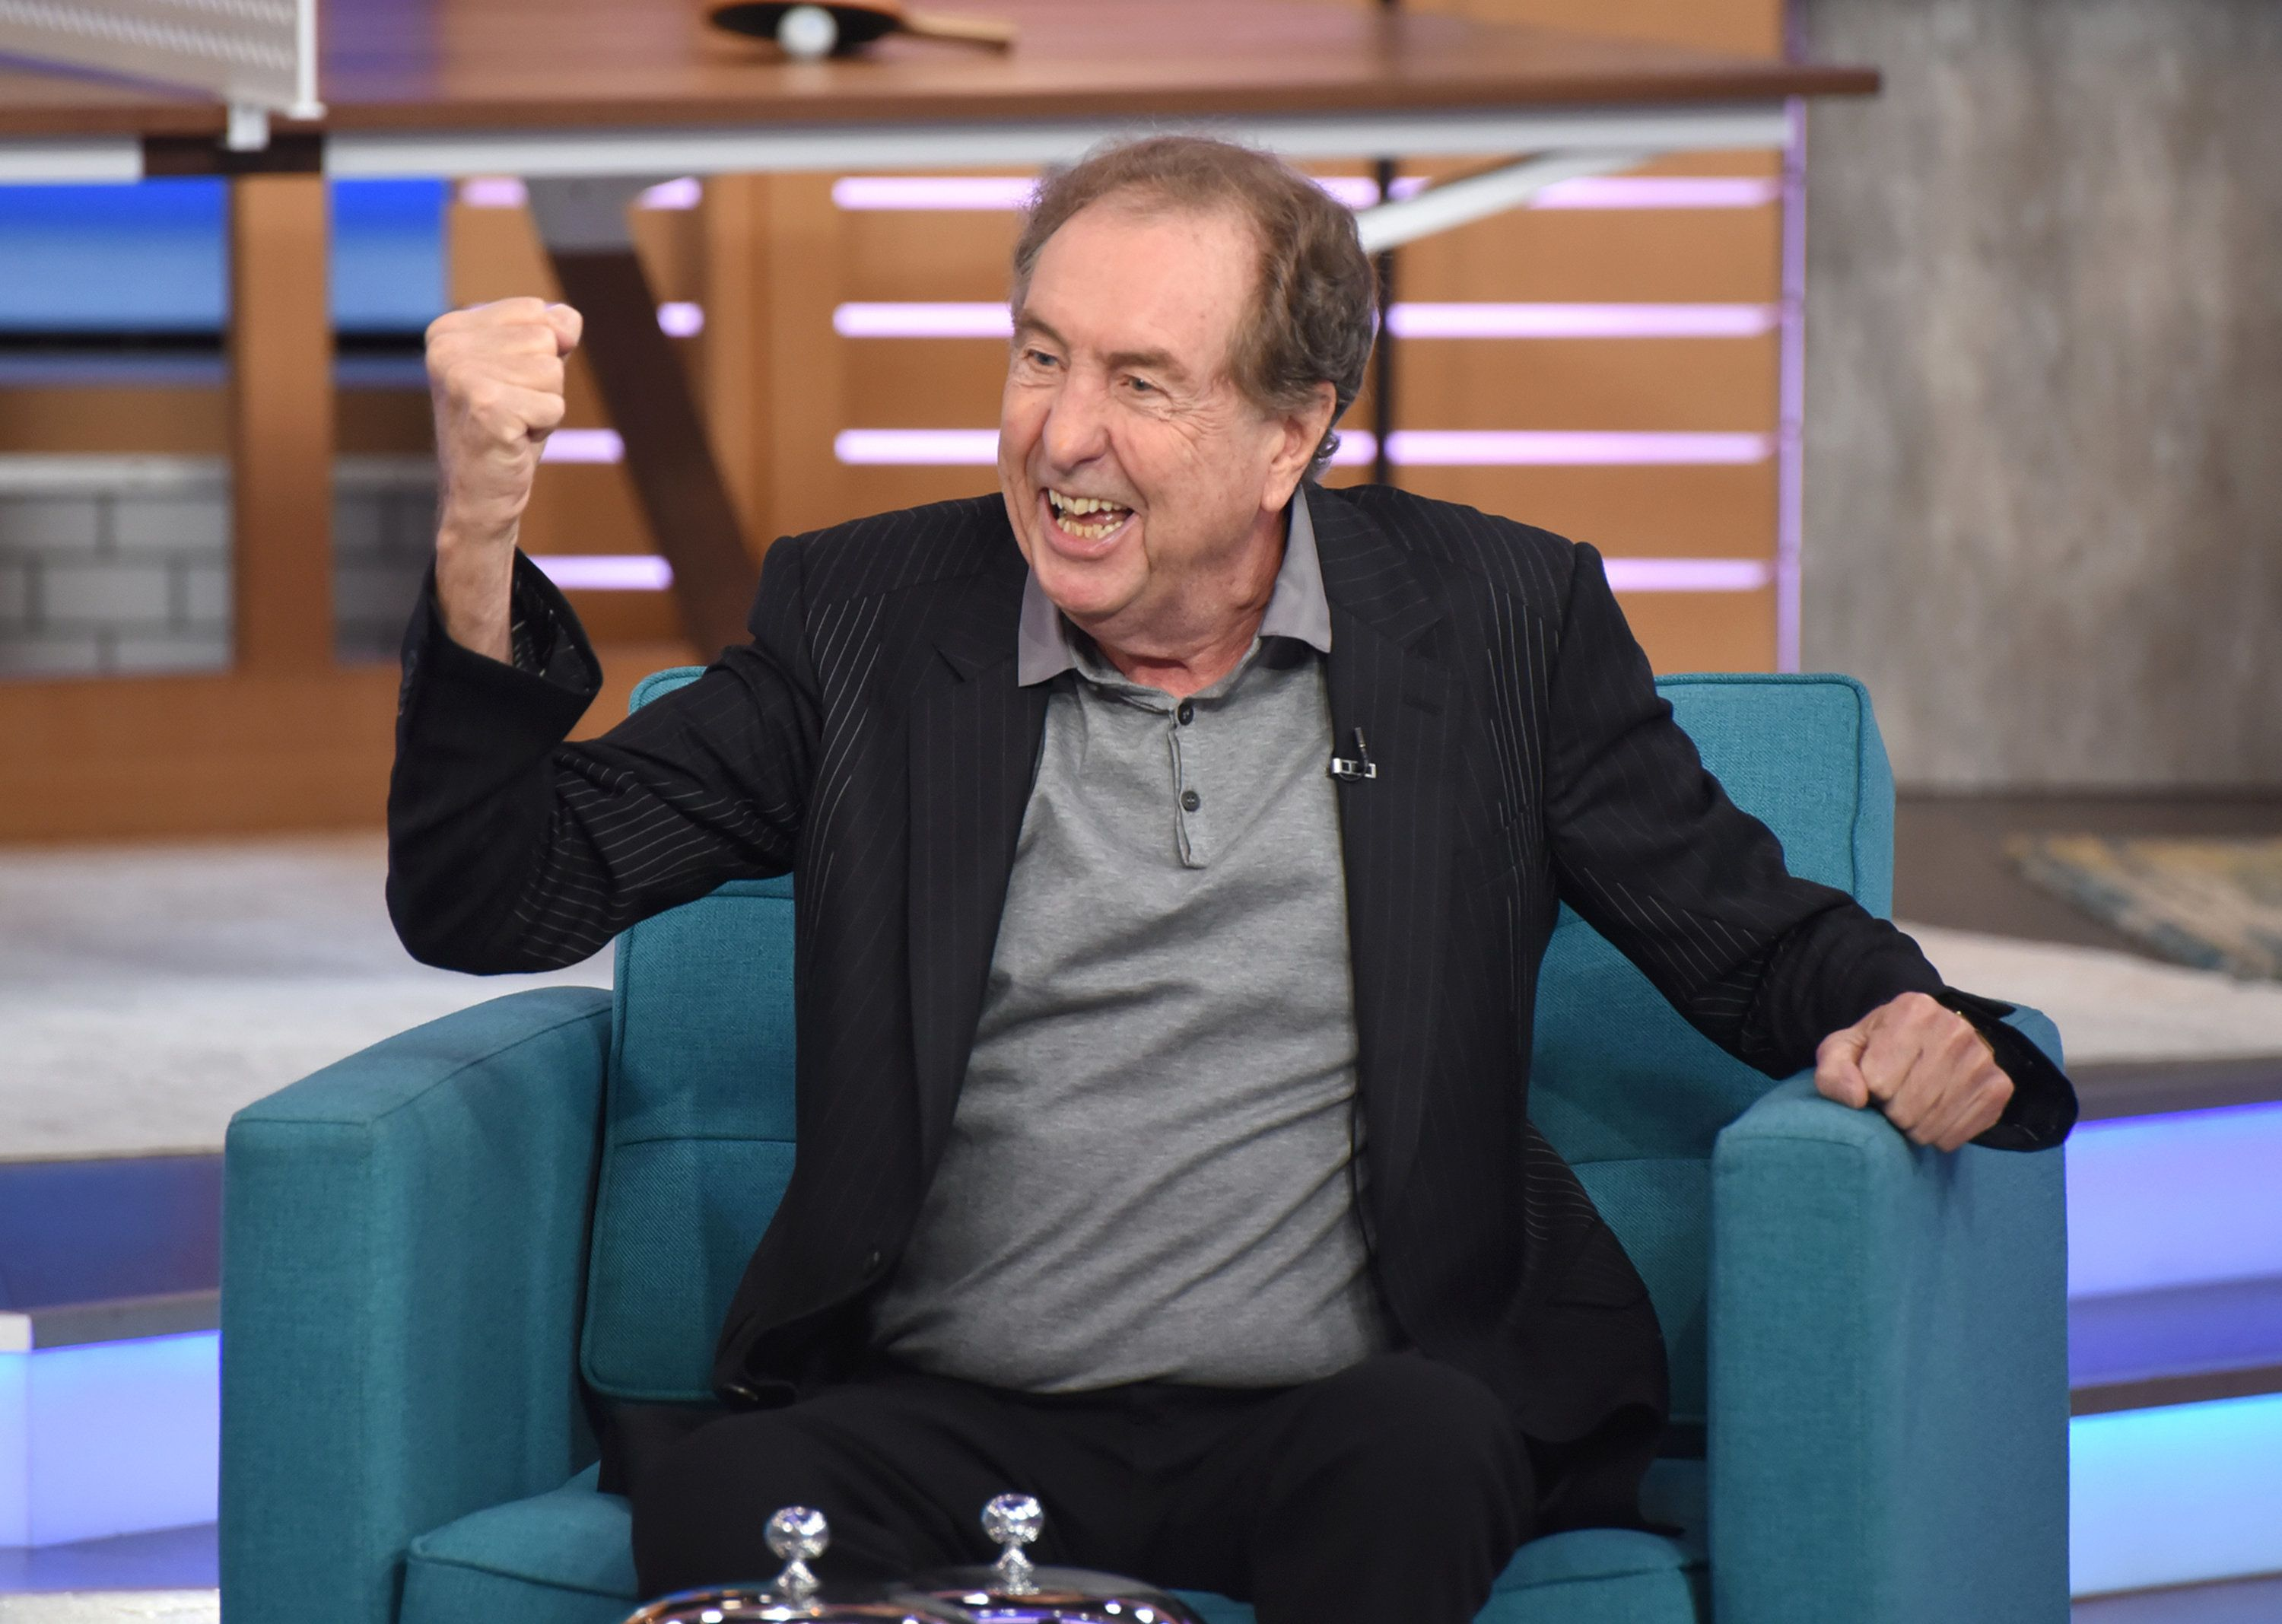 Monty Python Legend Eric Idle Mocks Trump's Border Wall With An Idea From 'Holy Grail'